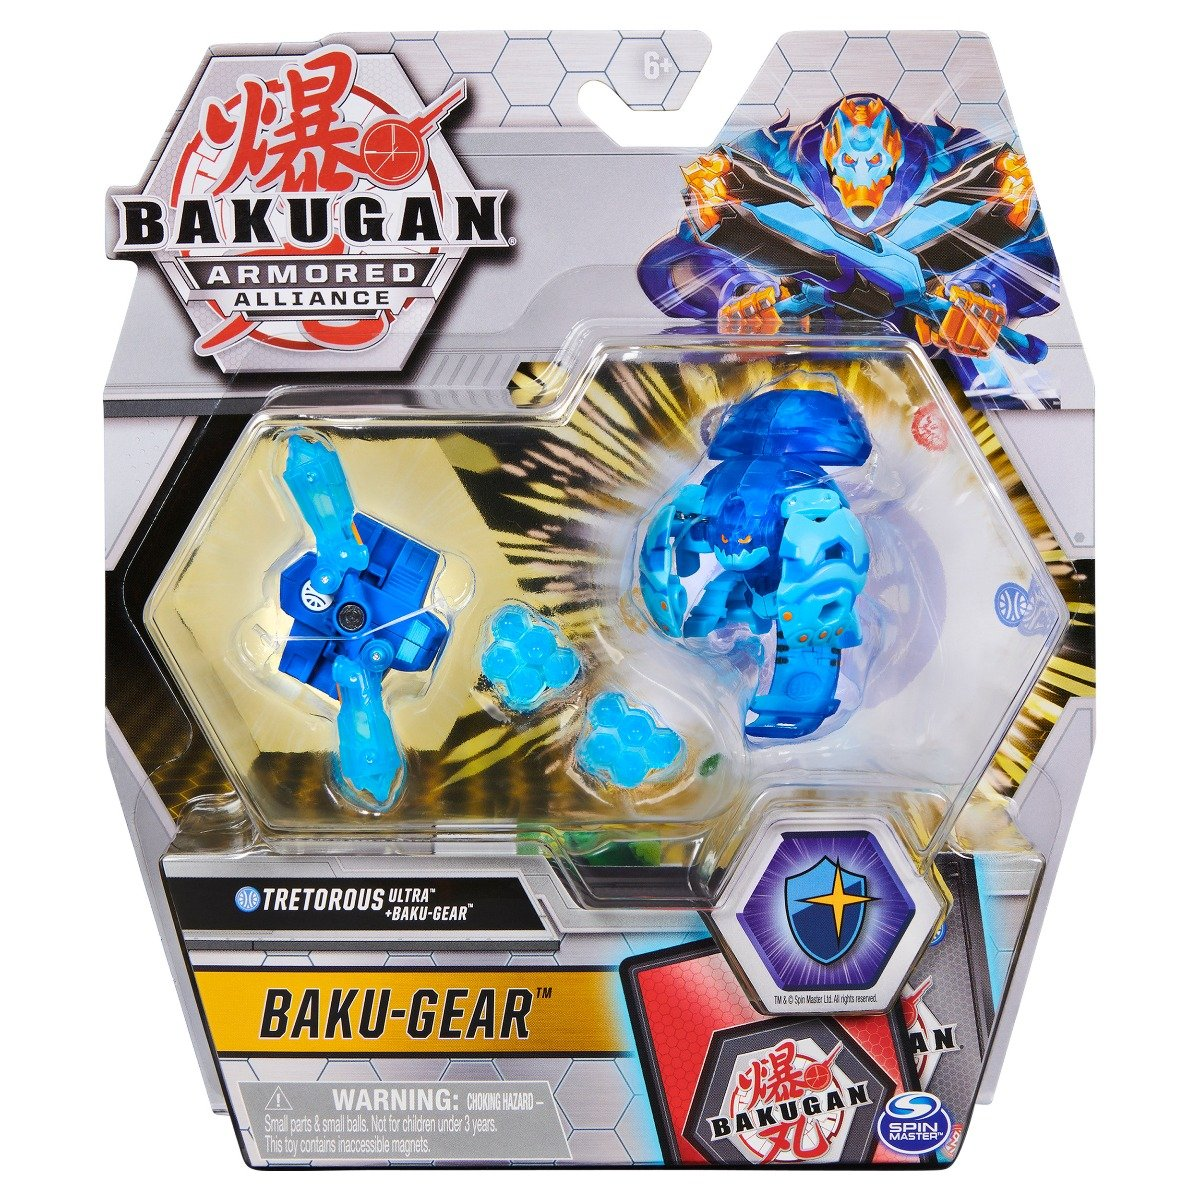 Figurina Bakugan Armored Alliance, Tretorous Ultra, Baku-Gear 20124761